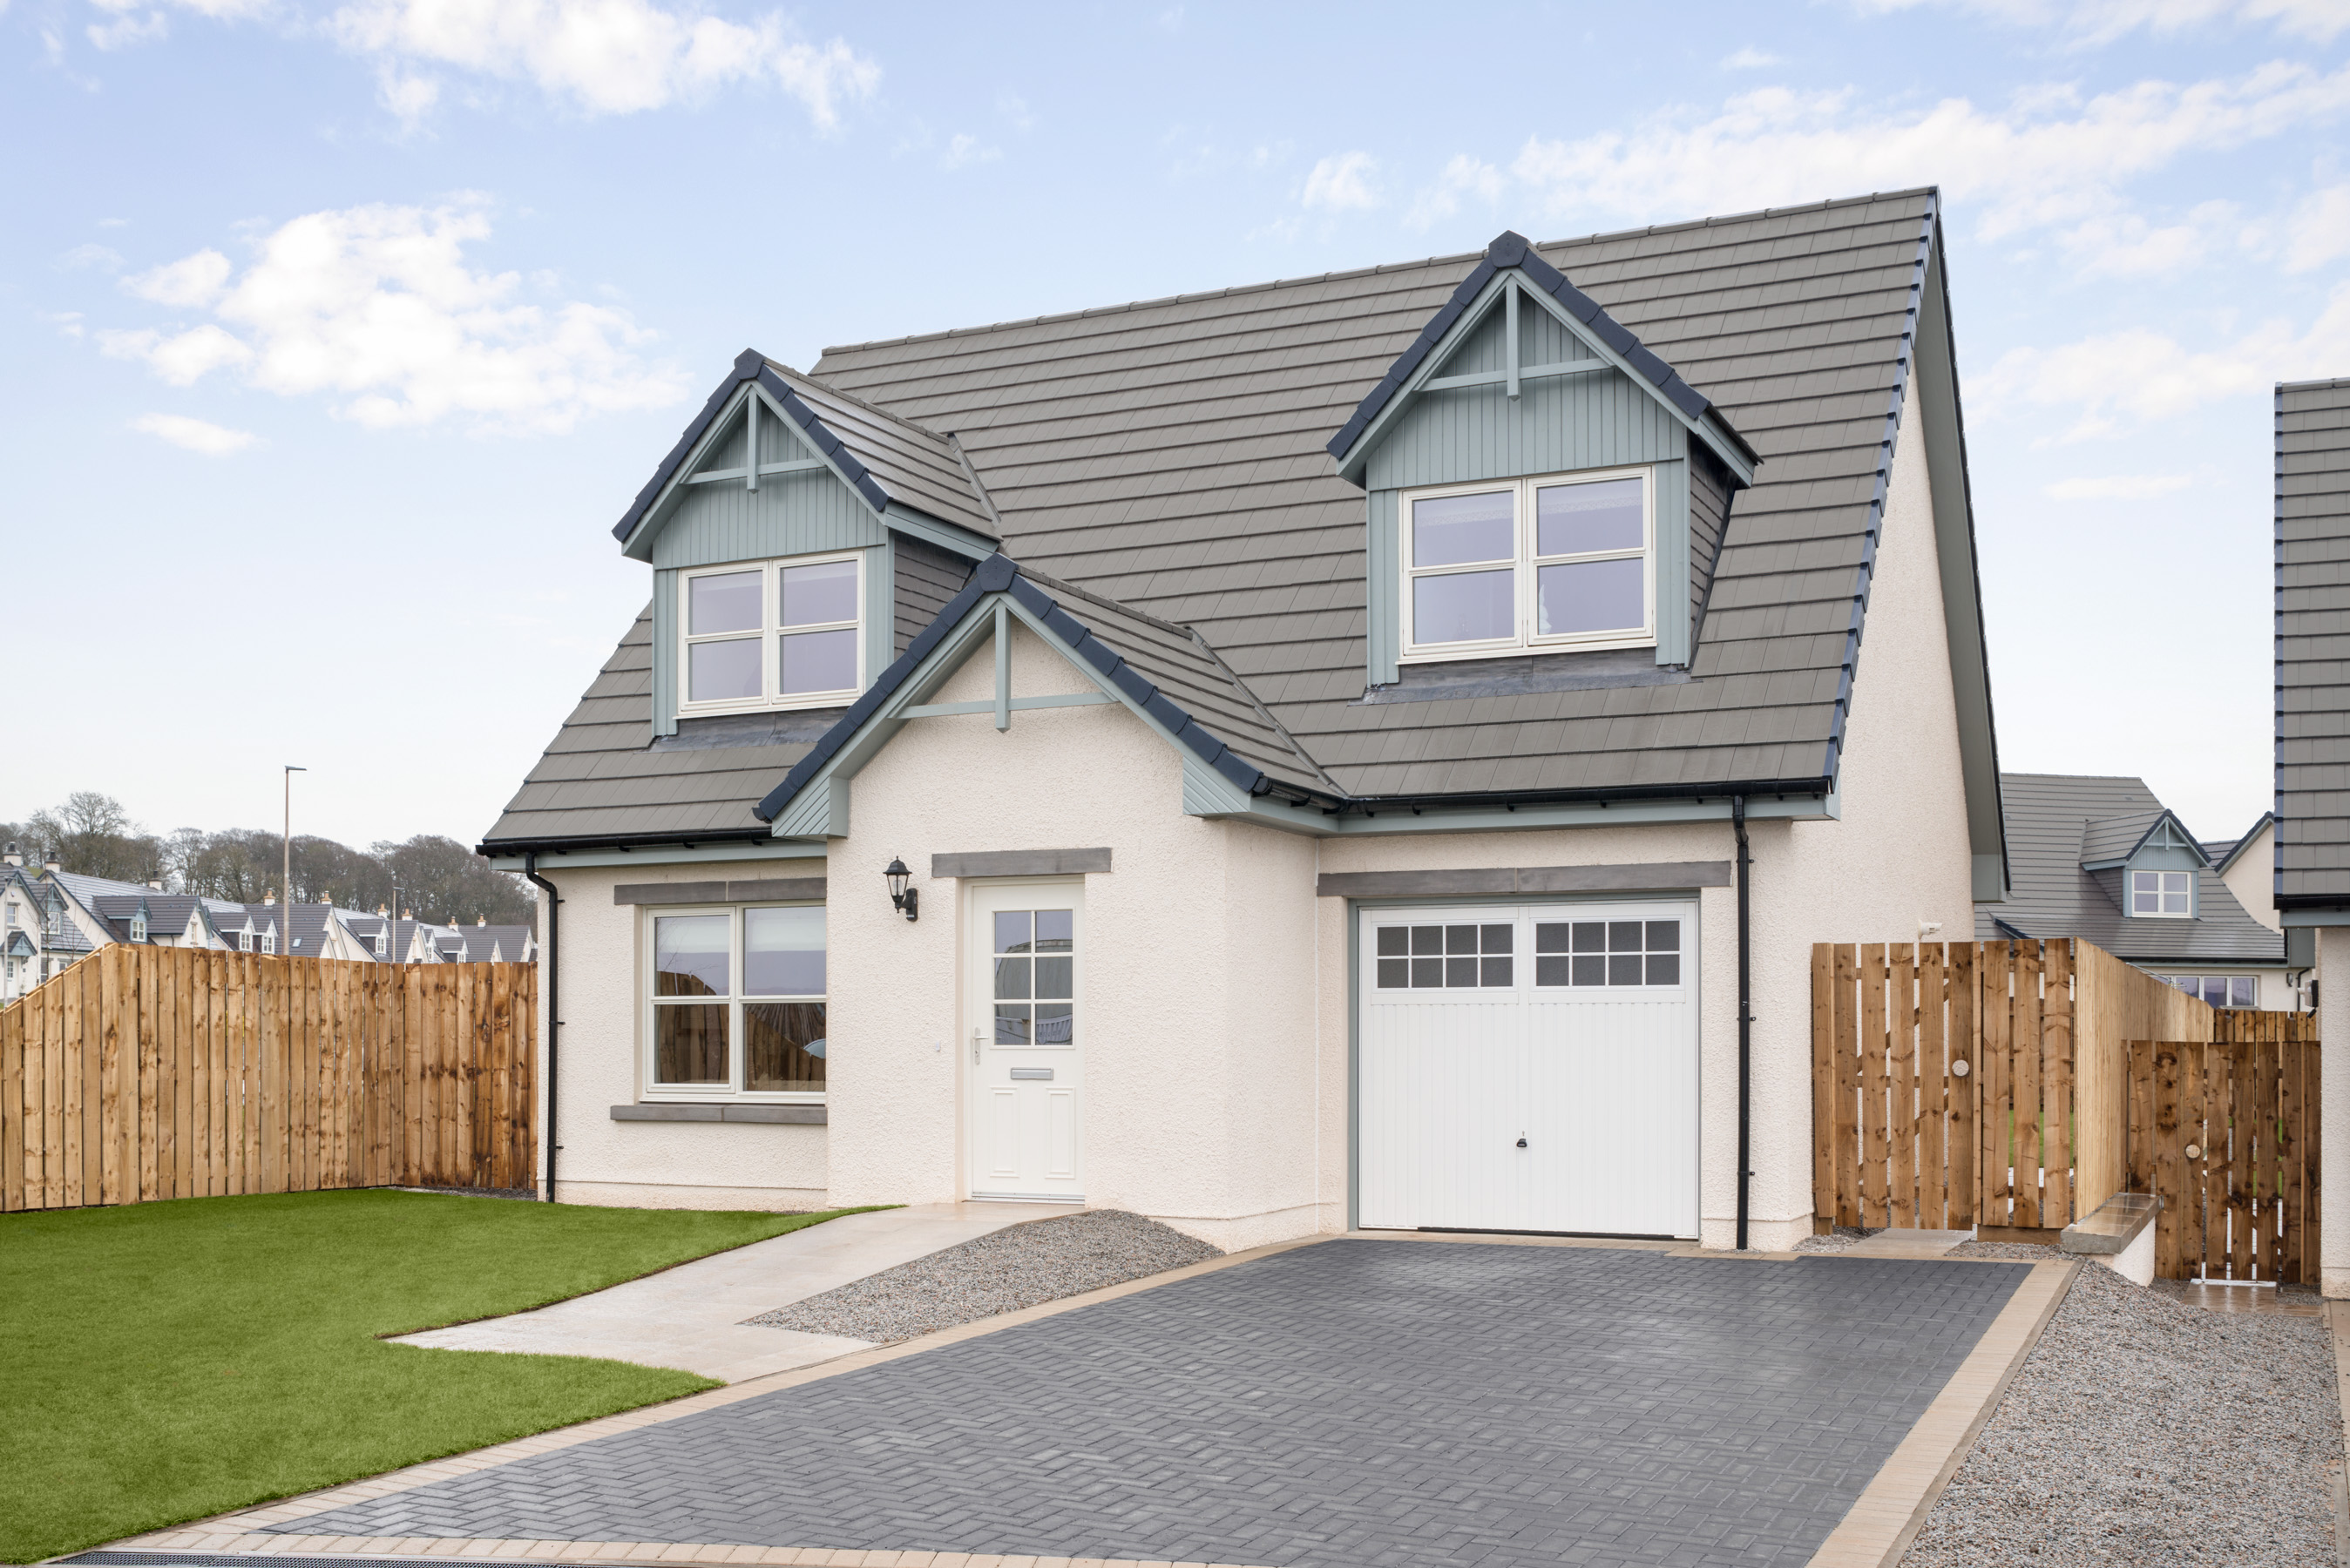 Plot 161 - The Craig - Kingsford Rise